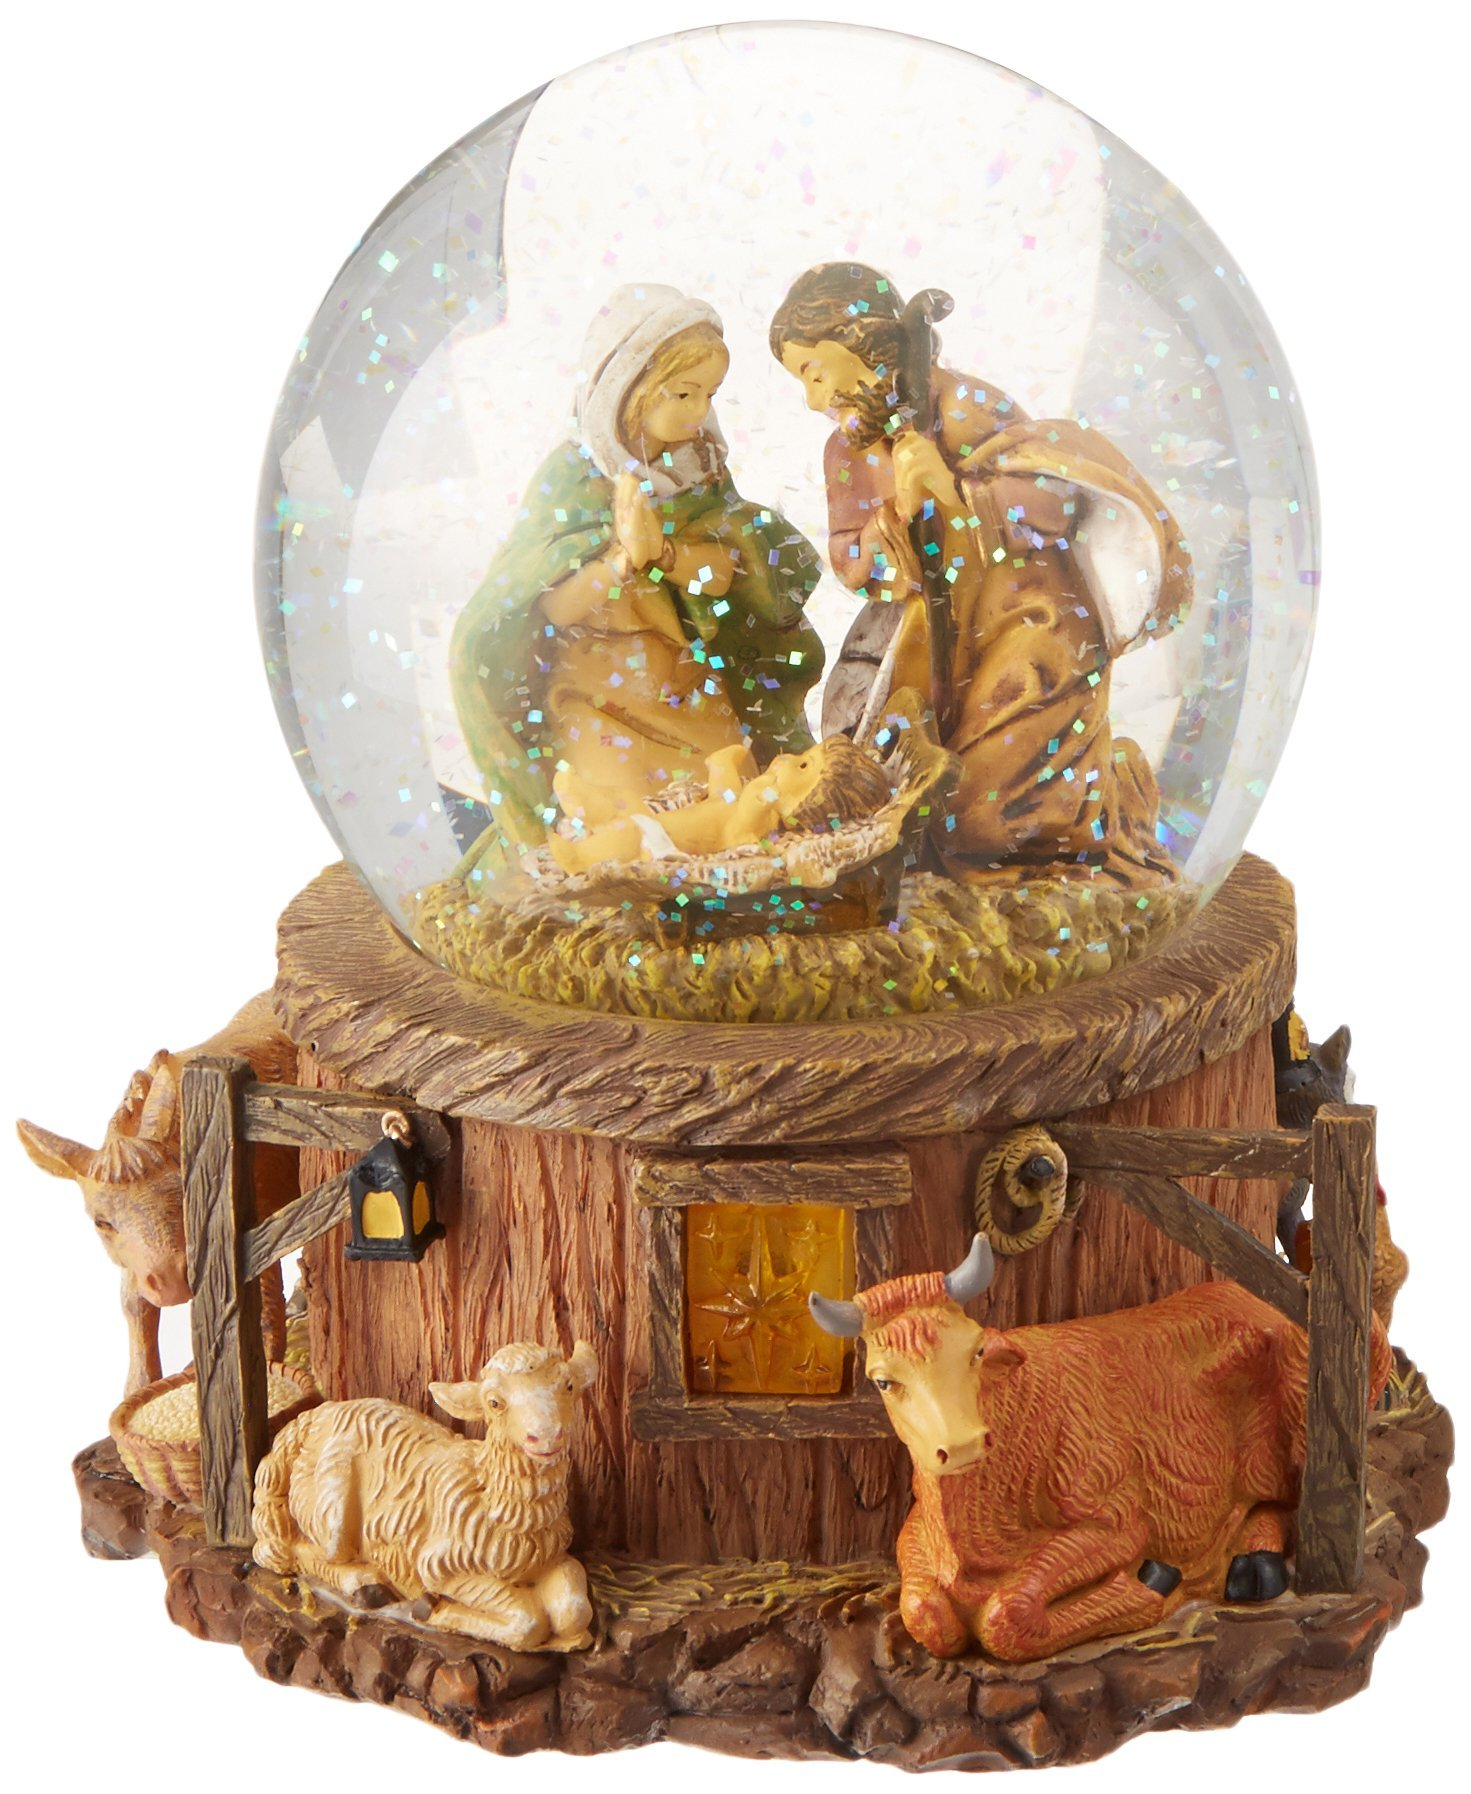 7.5'' Fontanini Musical Lighted Nativity Stable Scene Christmas Snow Globe Glitterdome